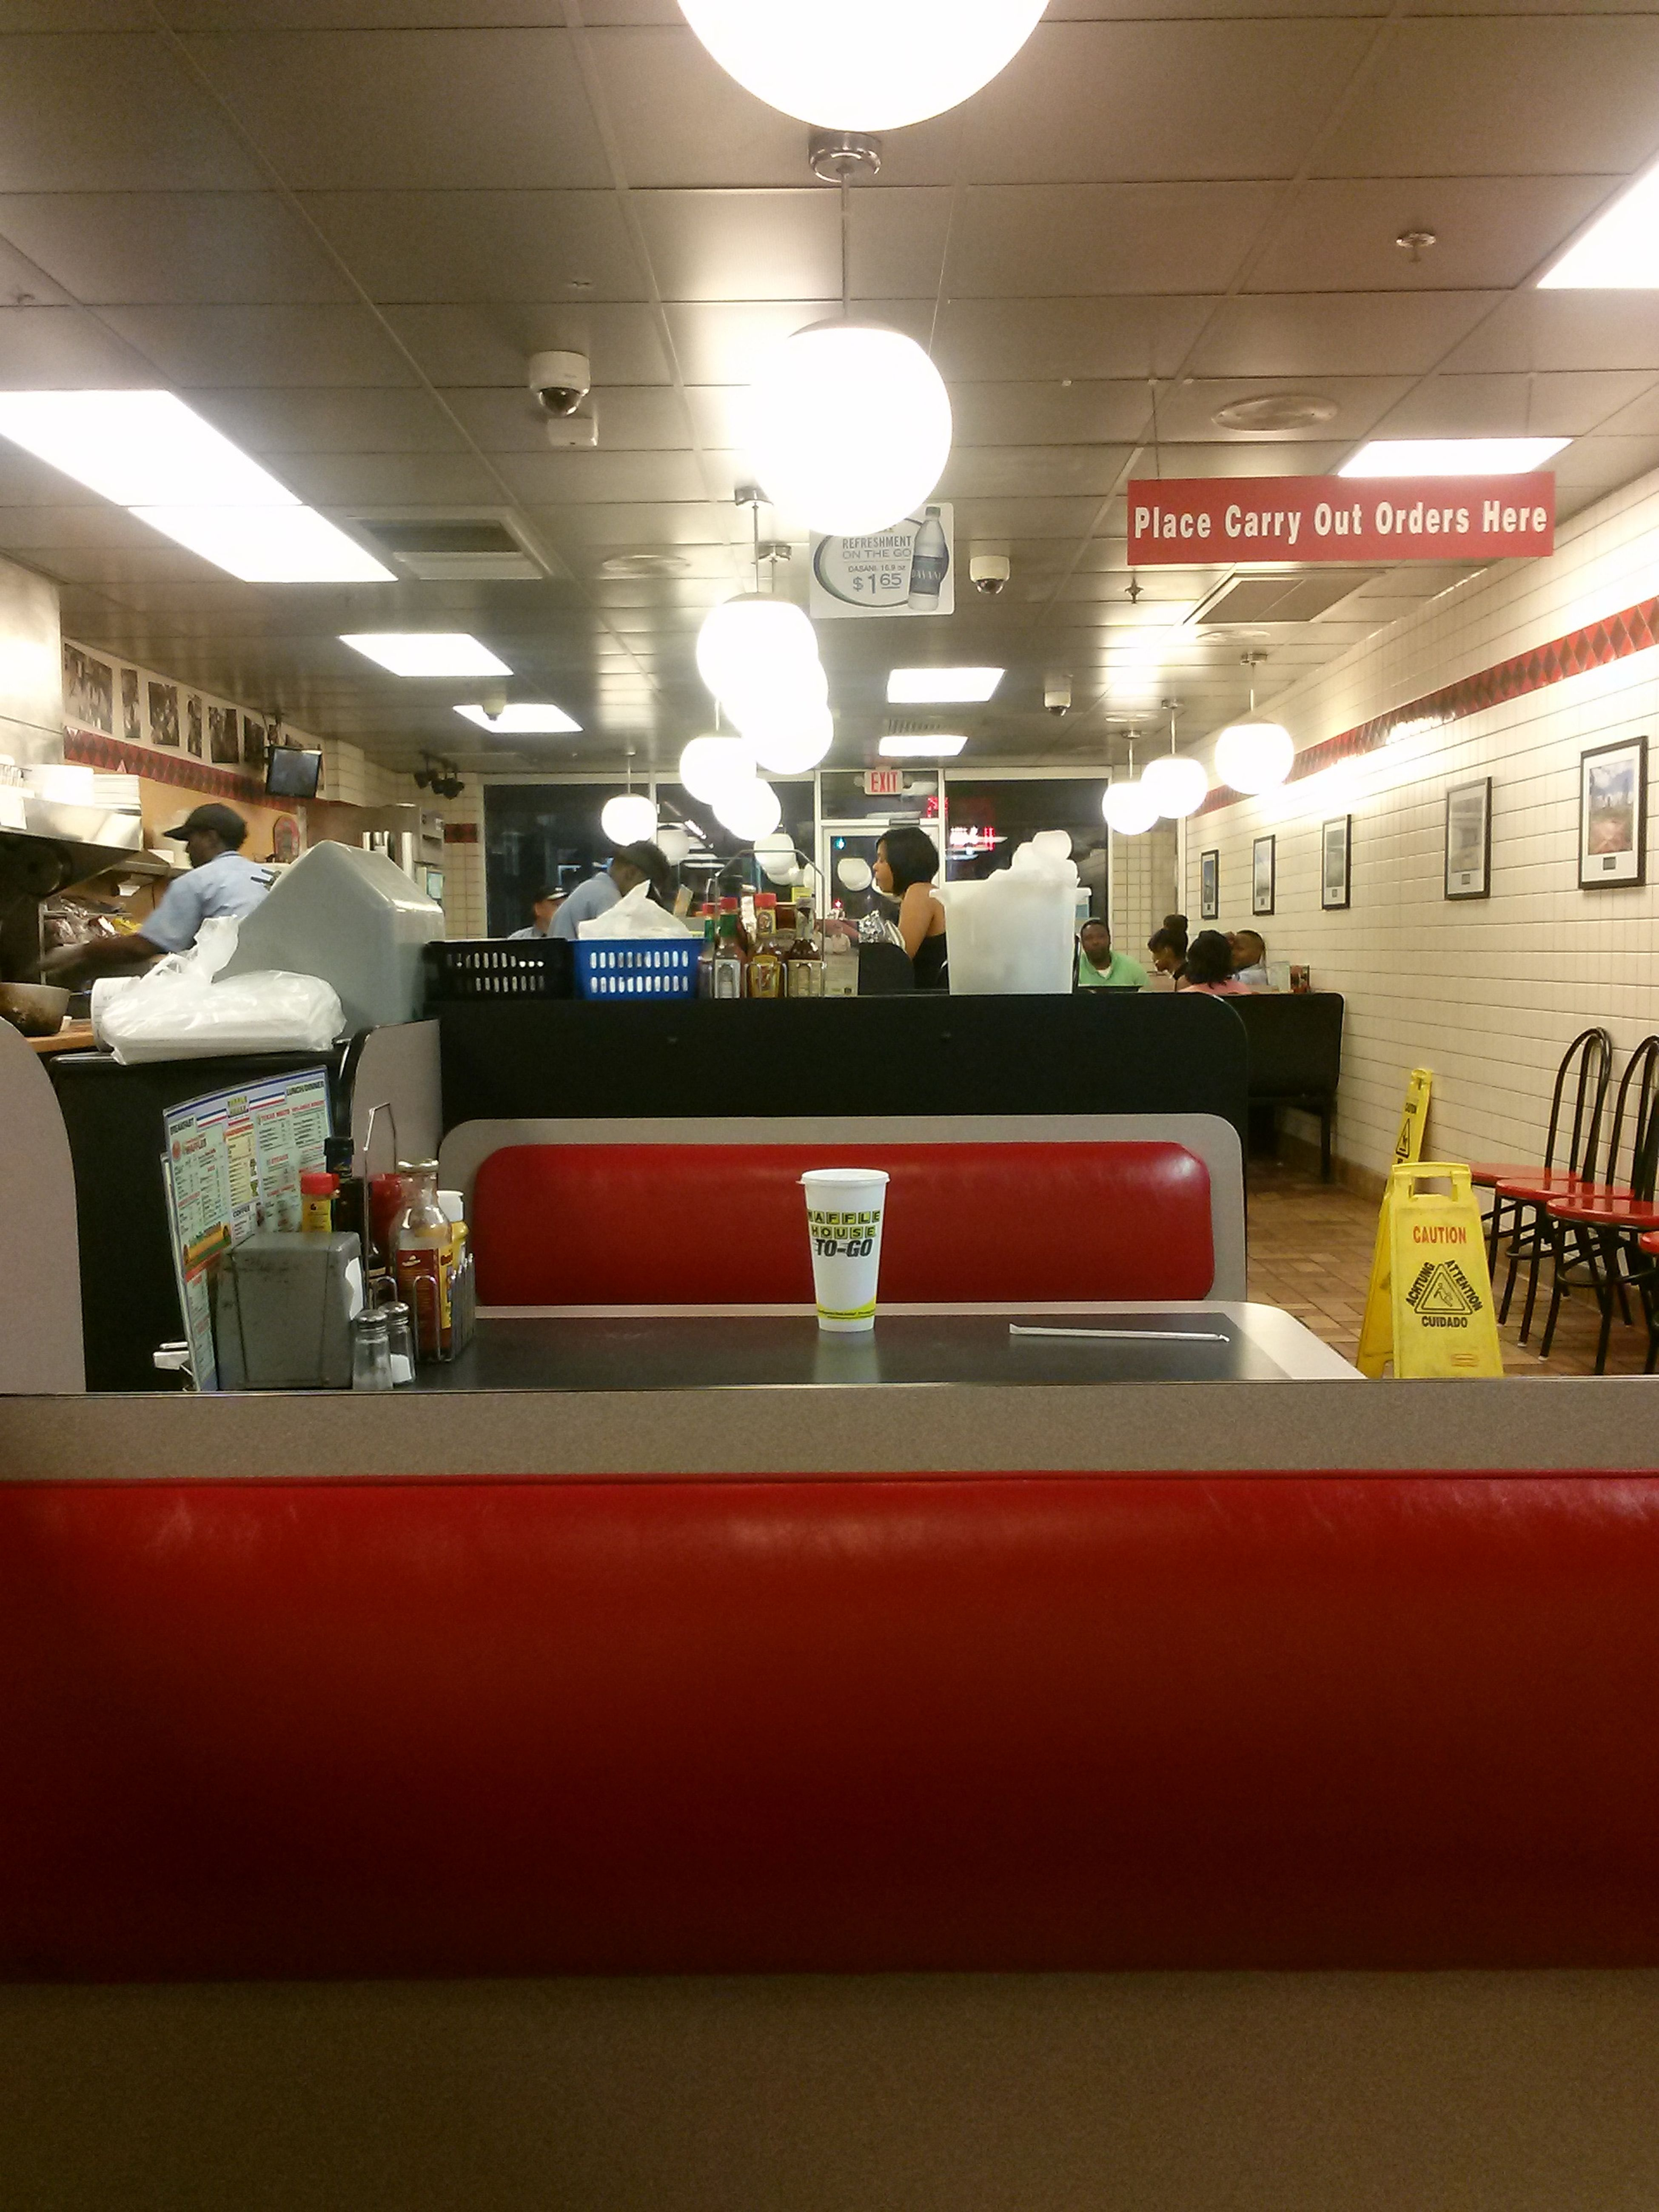 My first time in the Waffle House at Underground Atlanta. Every WH got a different vibe.